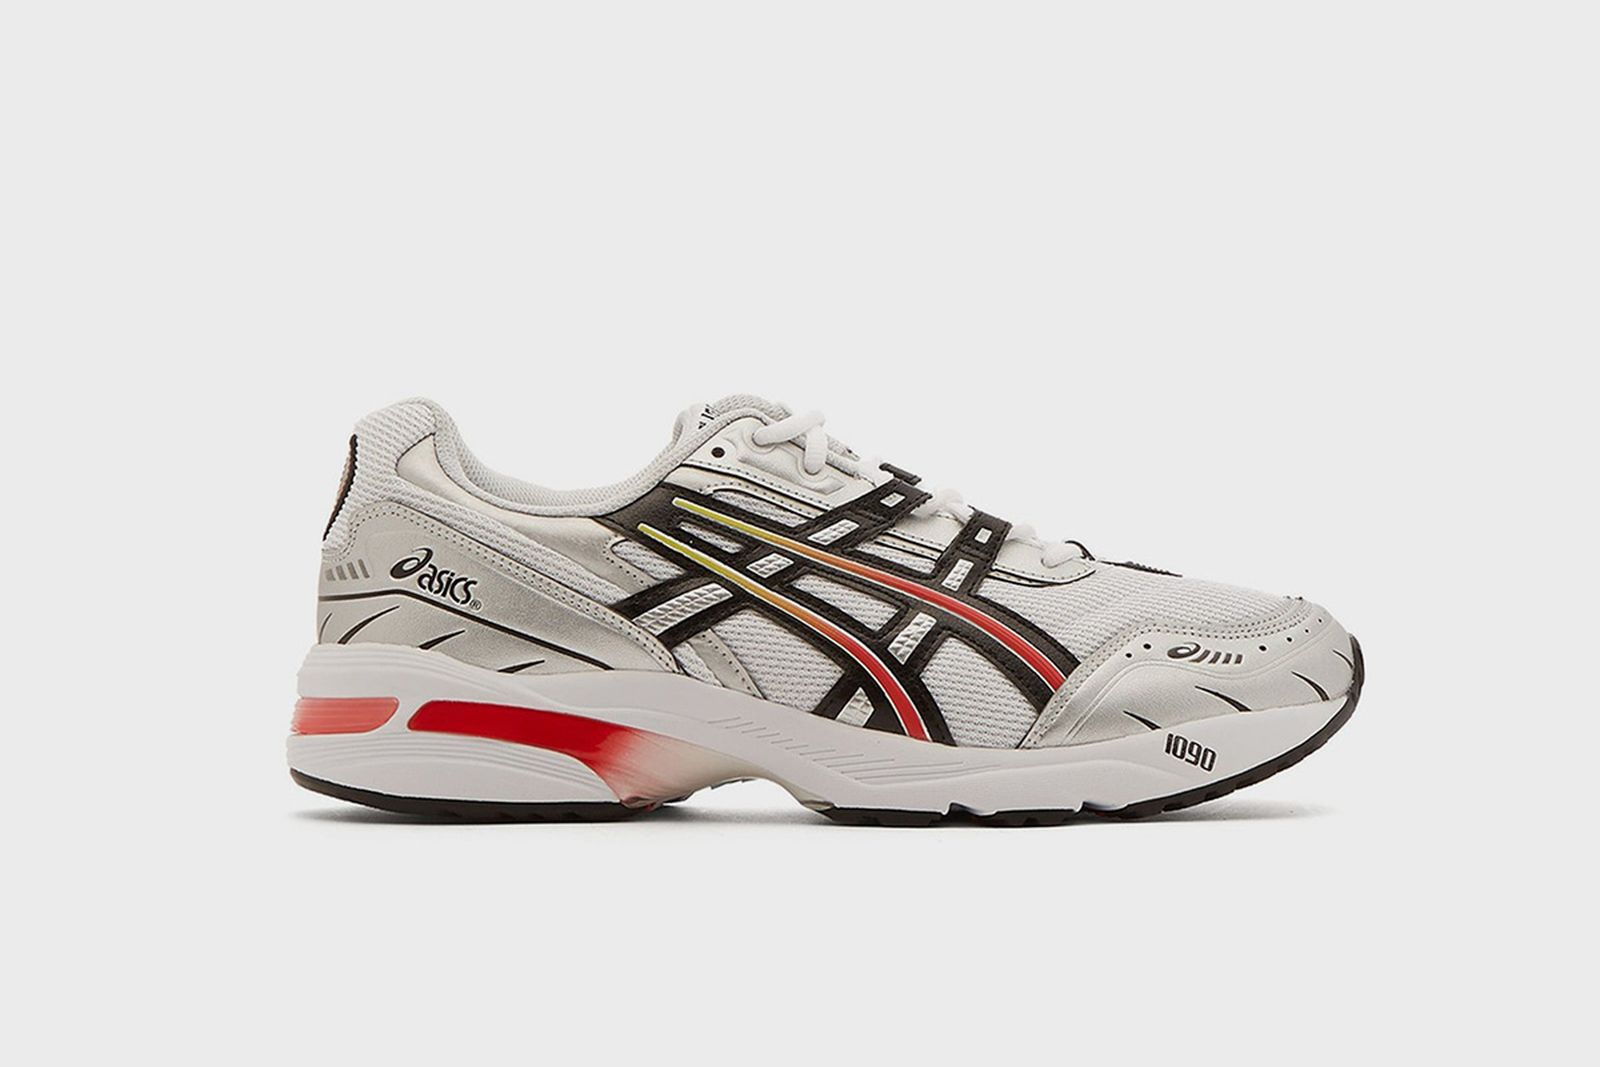 The Best ASICS Sneakers for Under $100